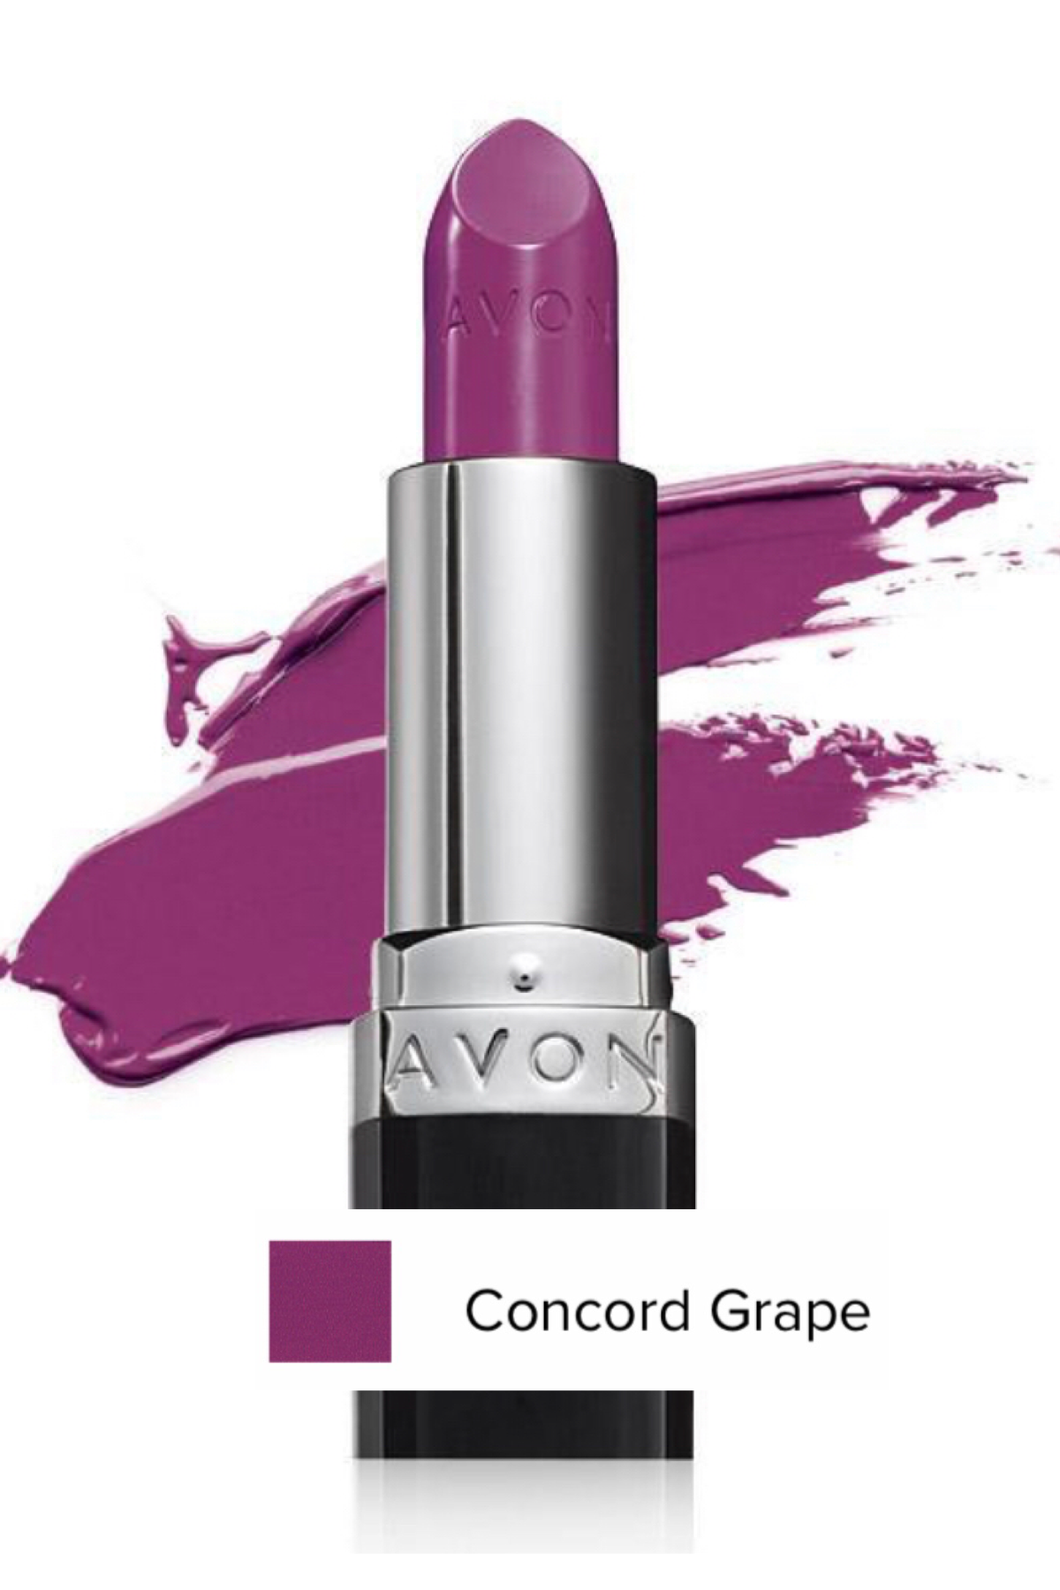 Concord Grape Nourishing Lipstick